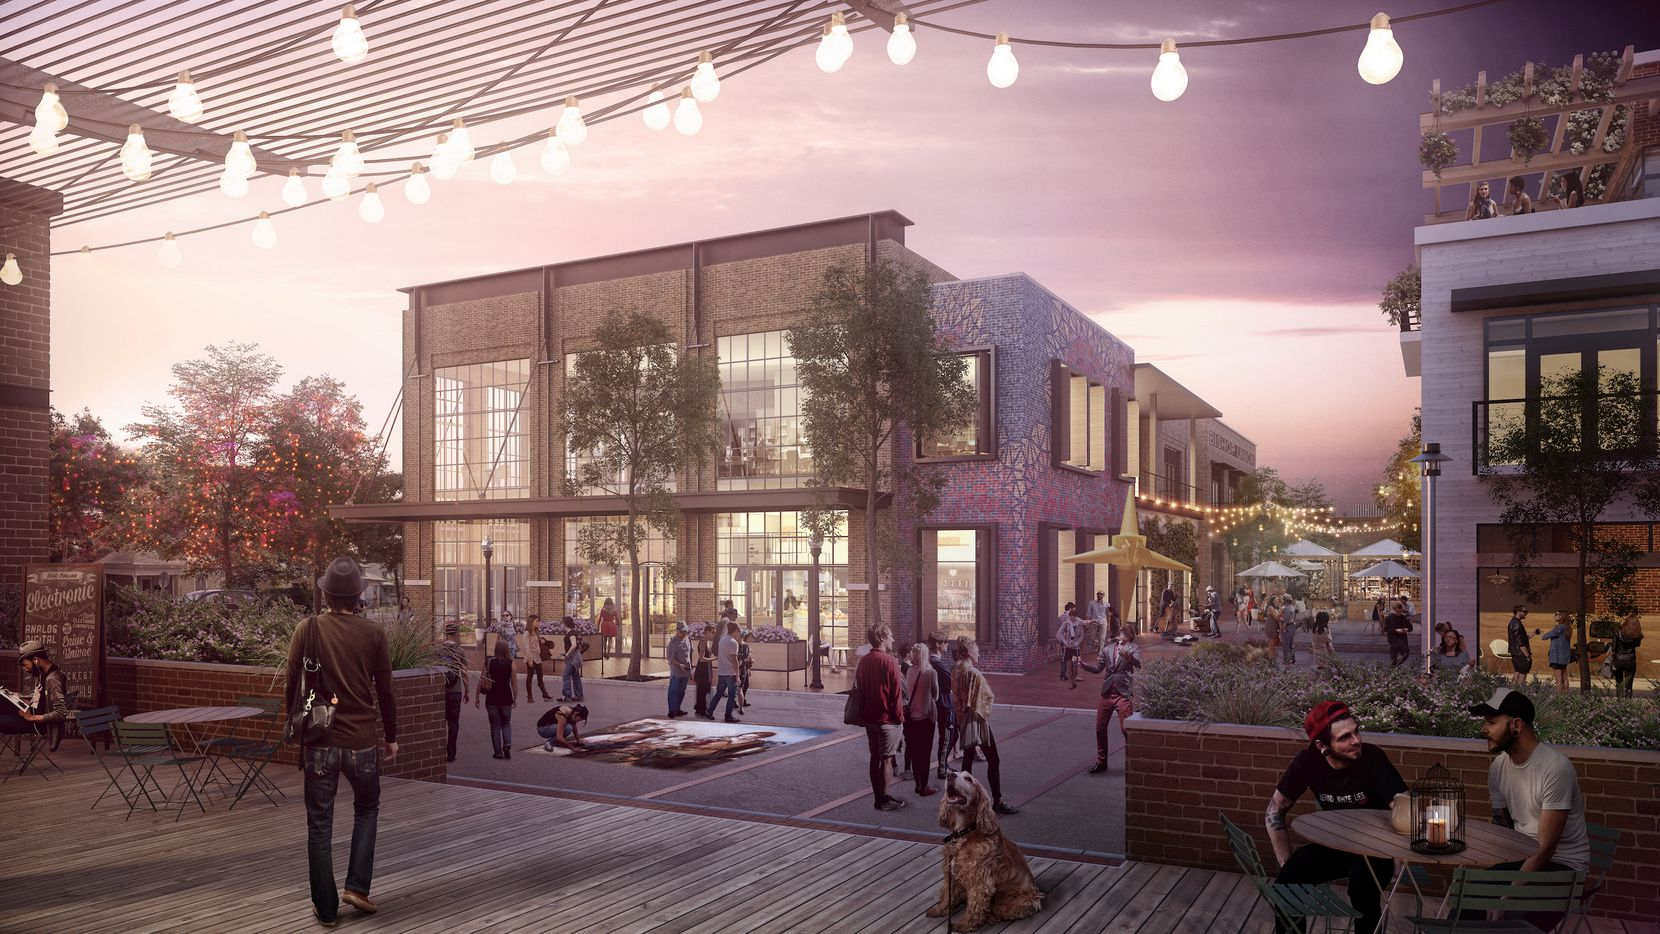 The Bishop Arts development is planned to include a mix of retail, apartments and commercial.